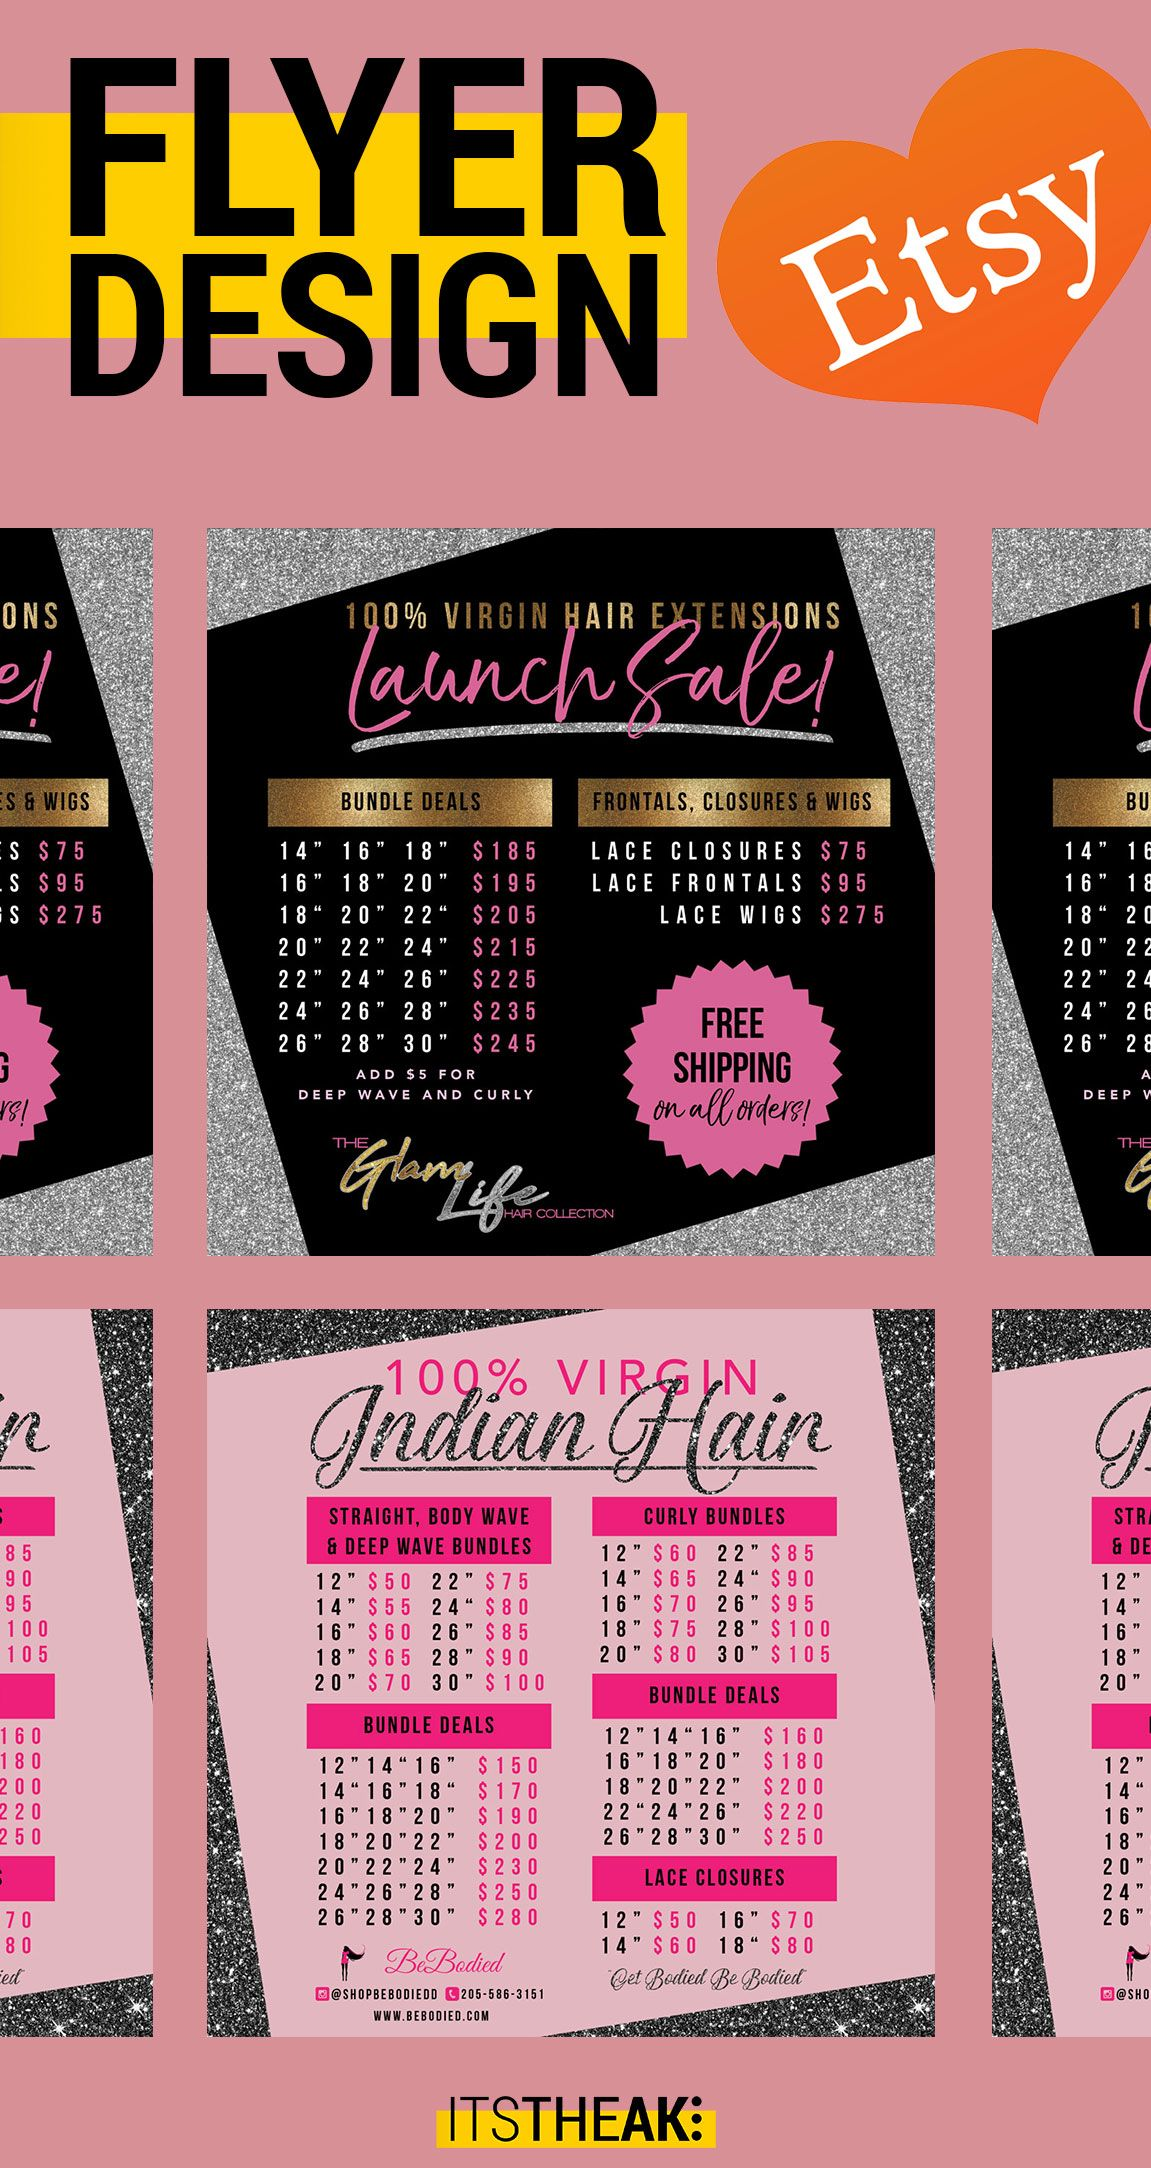 Pin On Toodiefor Luxury Hair